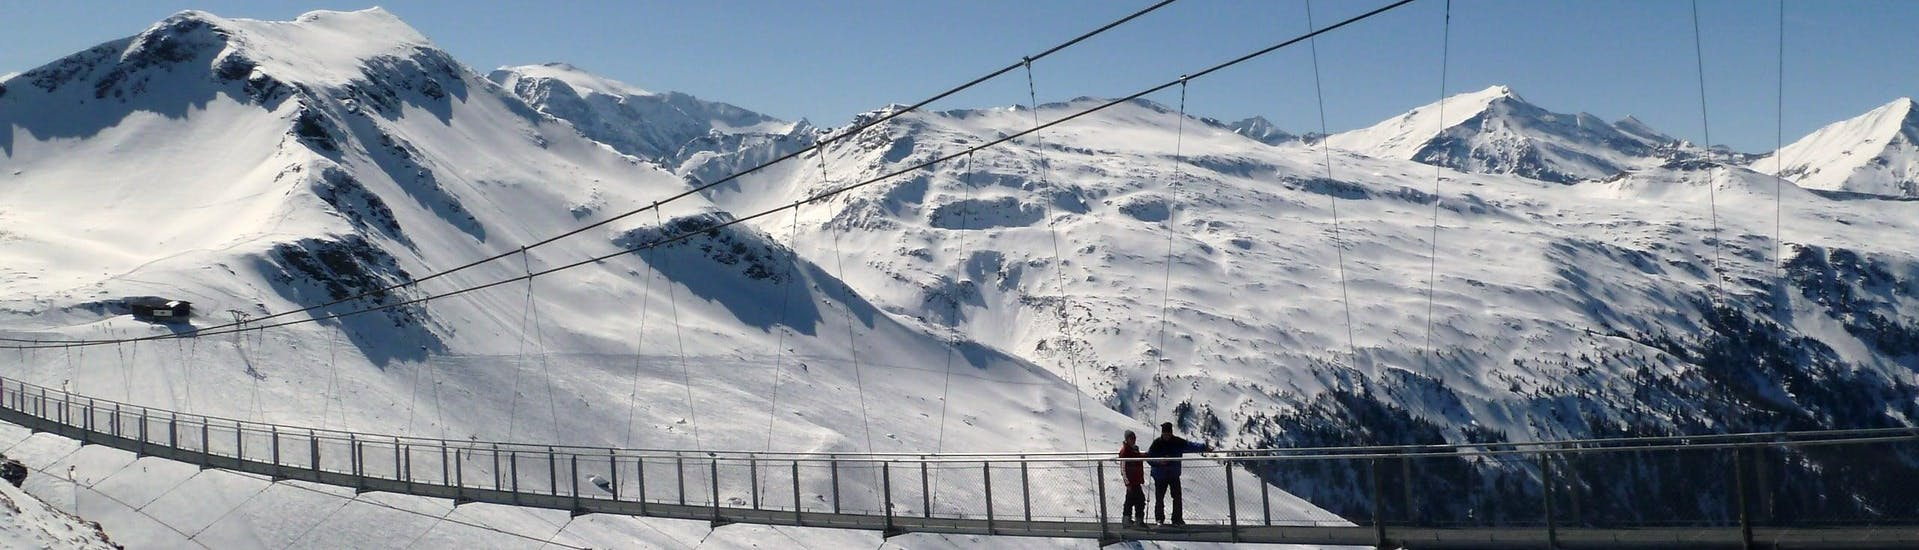 View over the sunny mountain landscape while learning to ski with the ski schools in Bad Hofgastein.